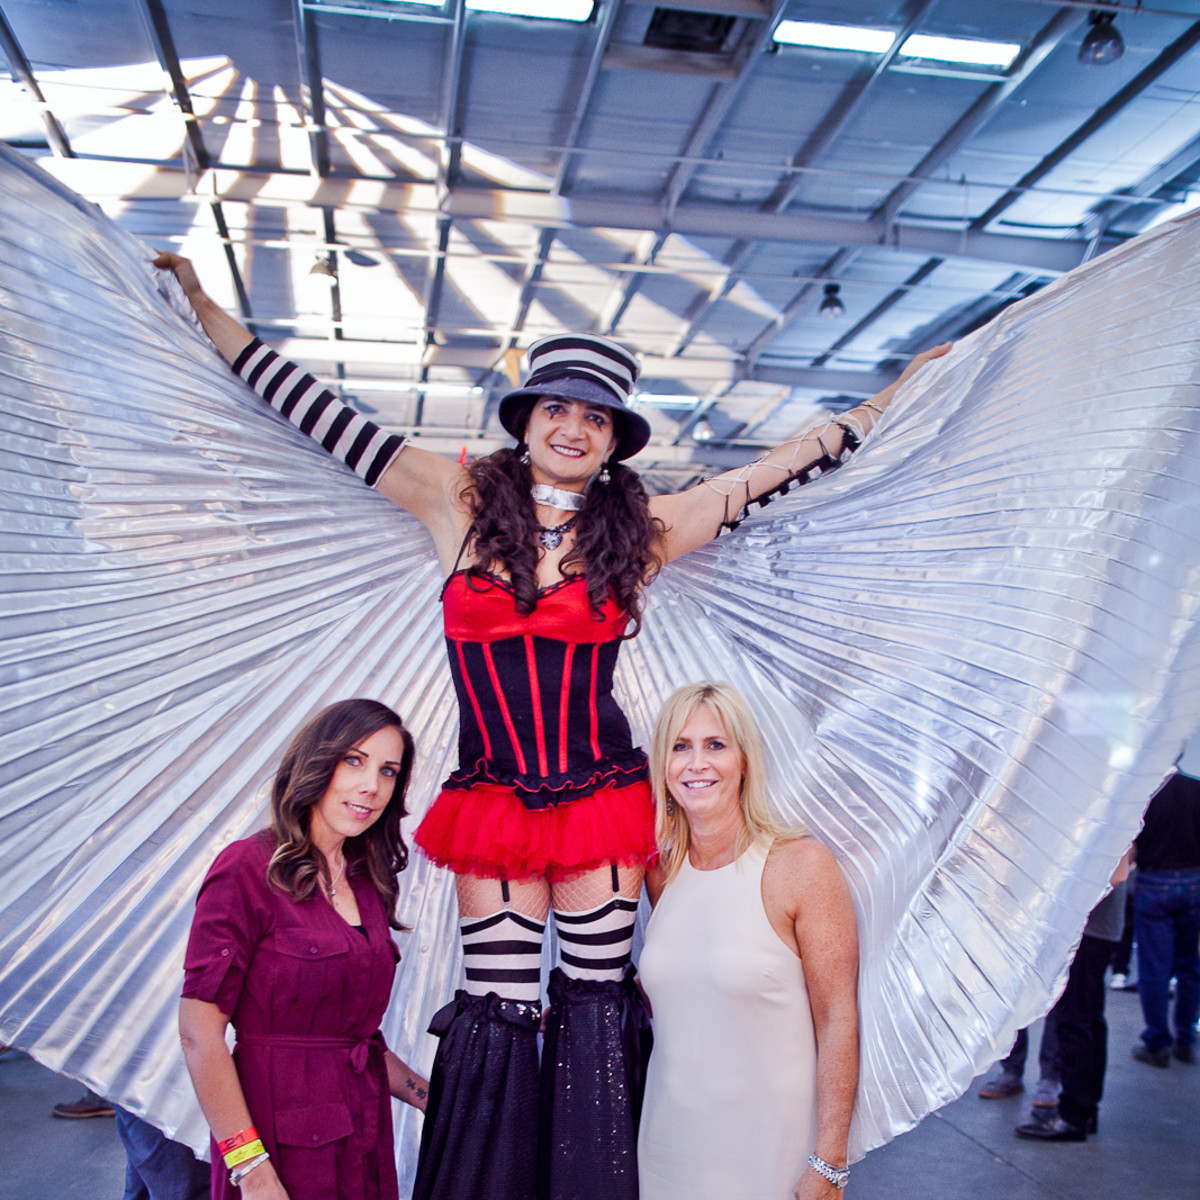 News, Joel, Mini Murals, Sept. 2015, Lisa Appleby, Cirque Noir performer, Lauren Valentino